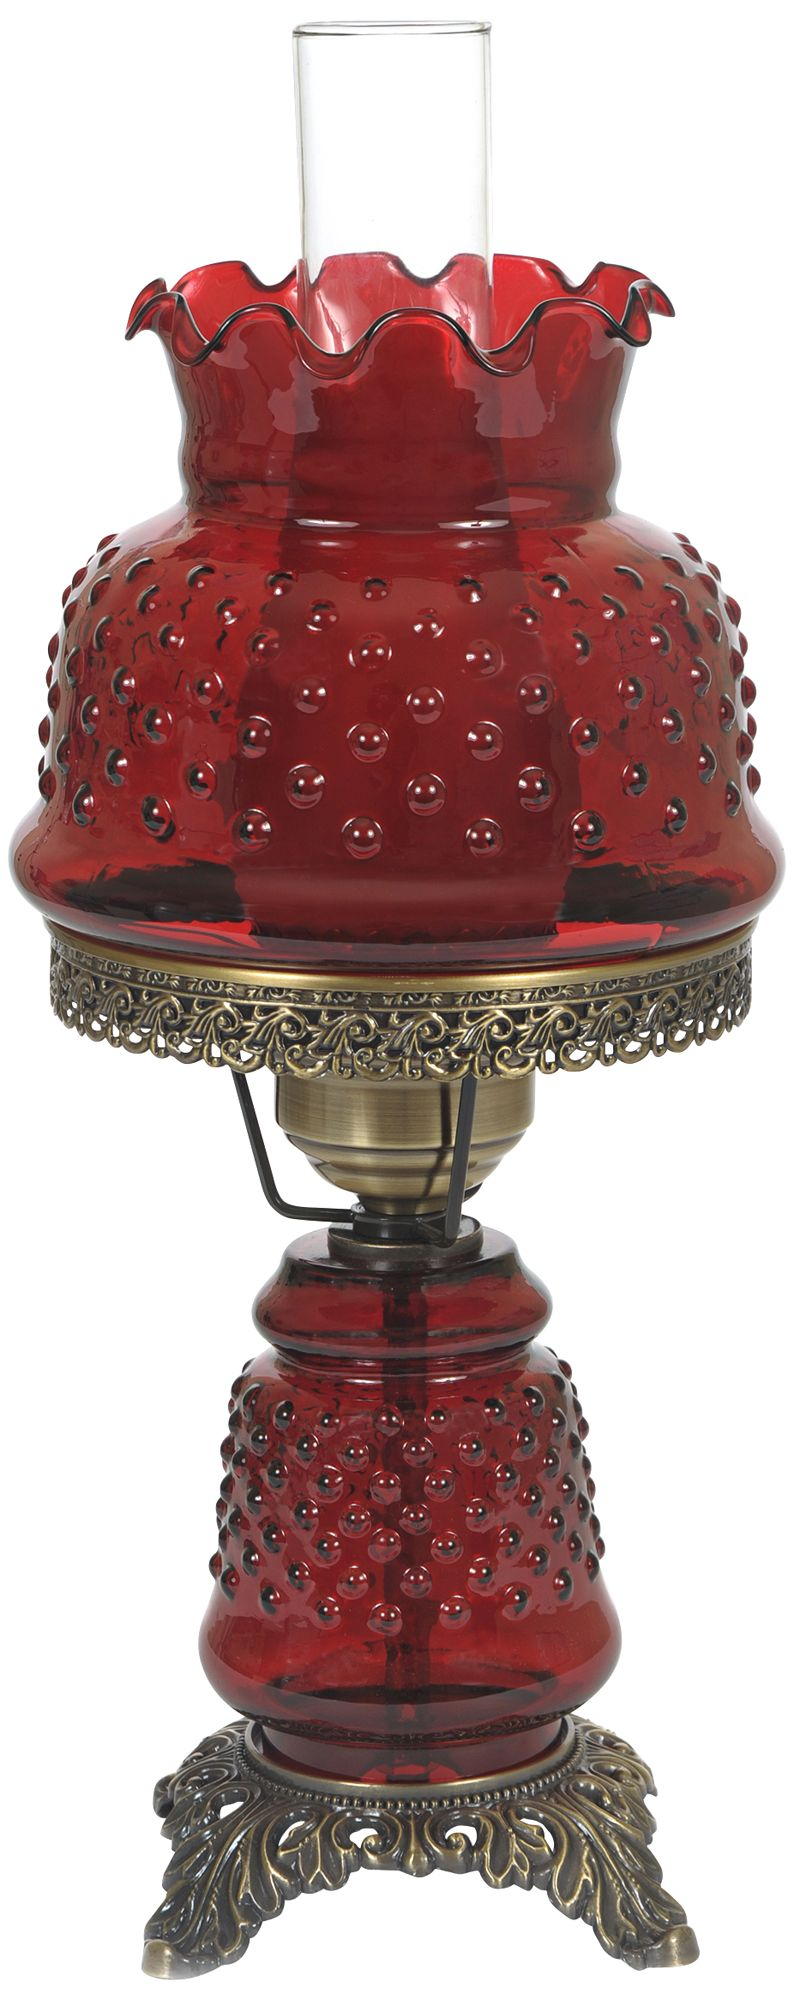 "Cranberry Hobnail Glass 18 1/2"" High Hurricane Table Lamp"